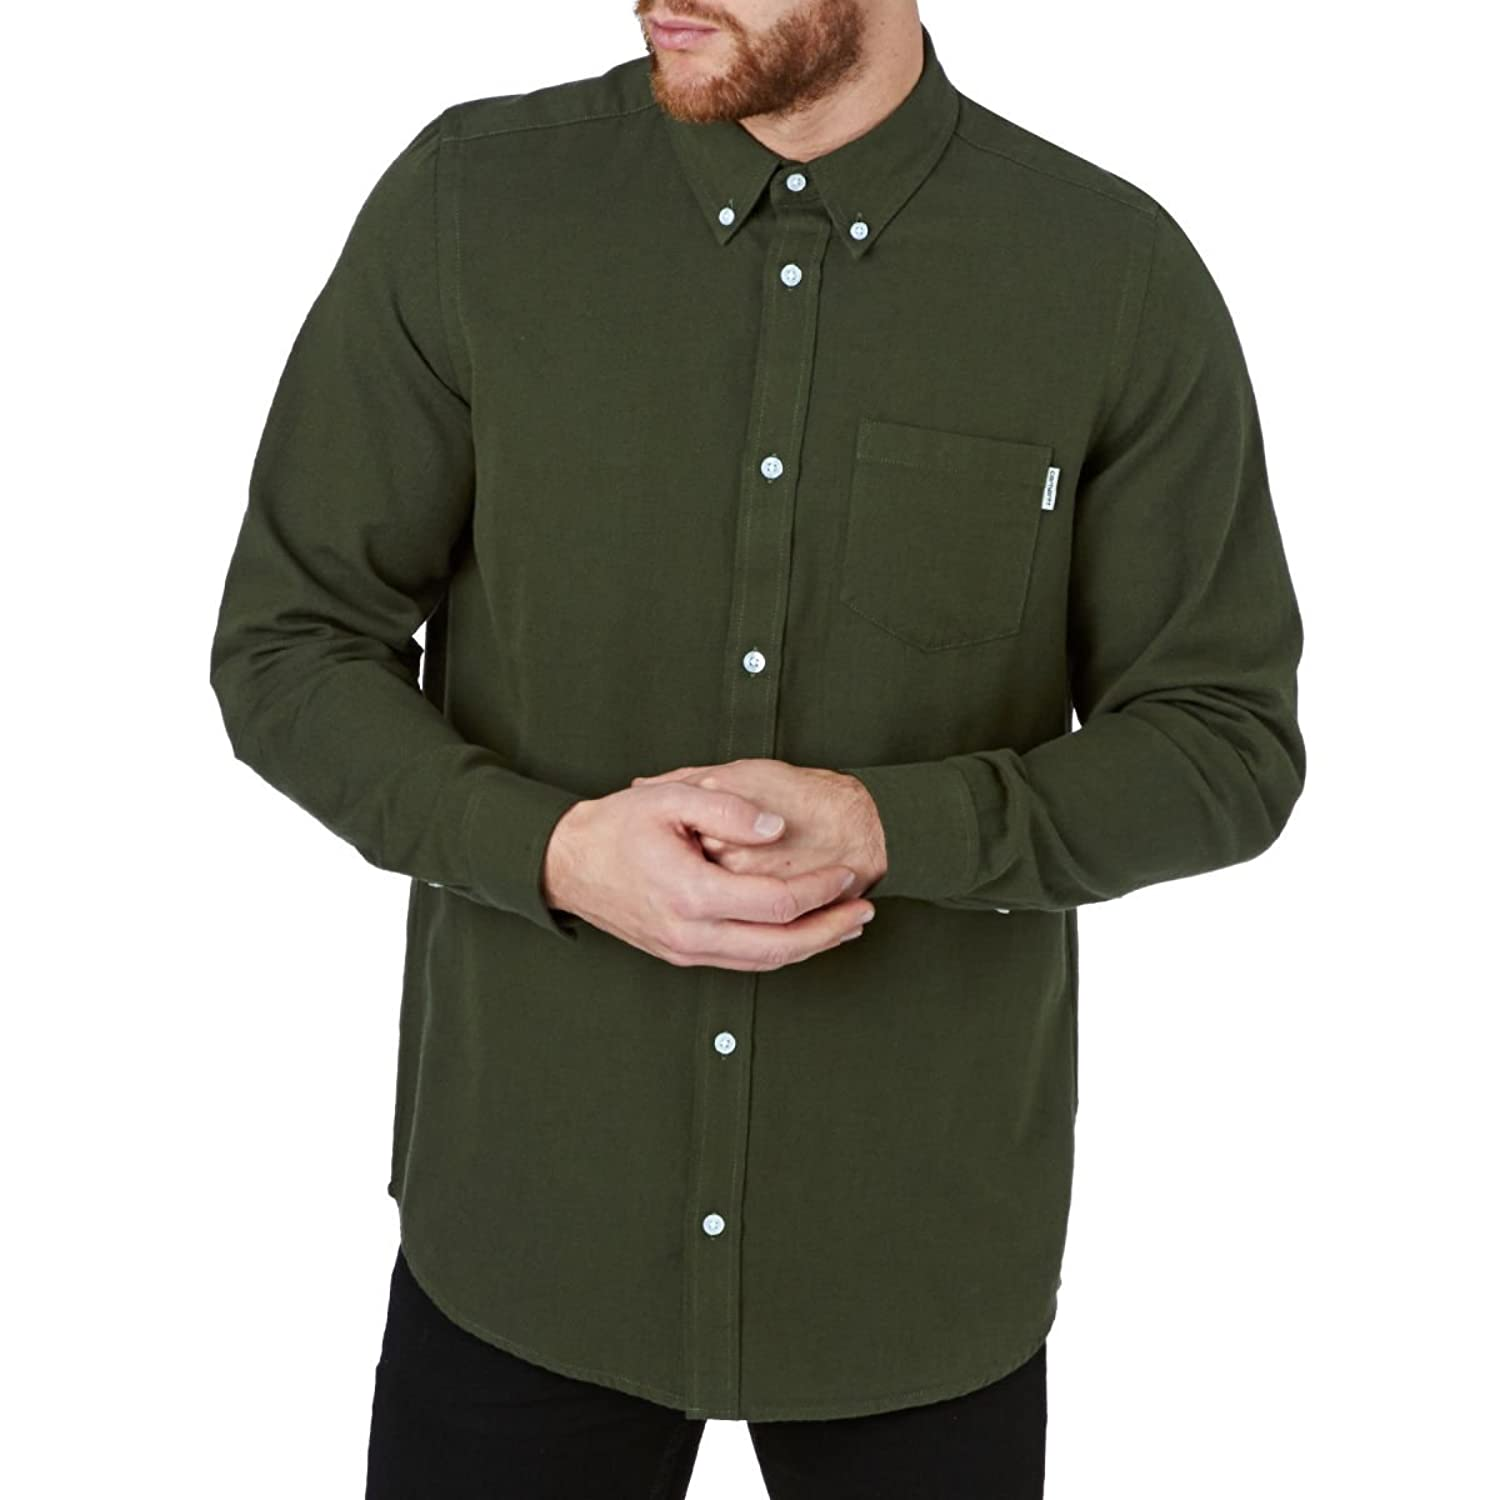 CARHARTT WIP - Casual Shirts - Men - Washed Dark Green Oxford Button-down Dalton Shirt for men